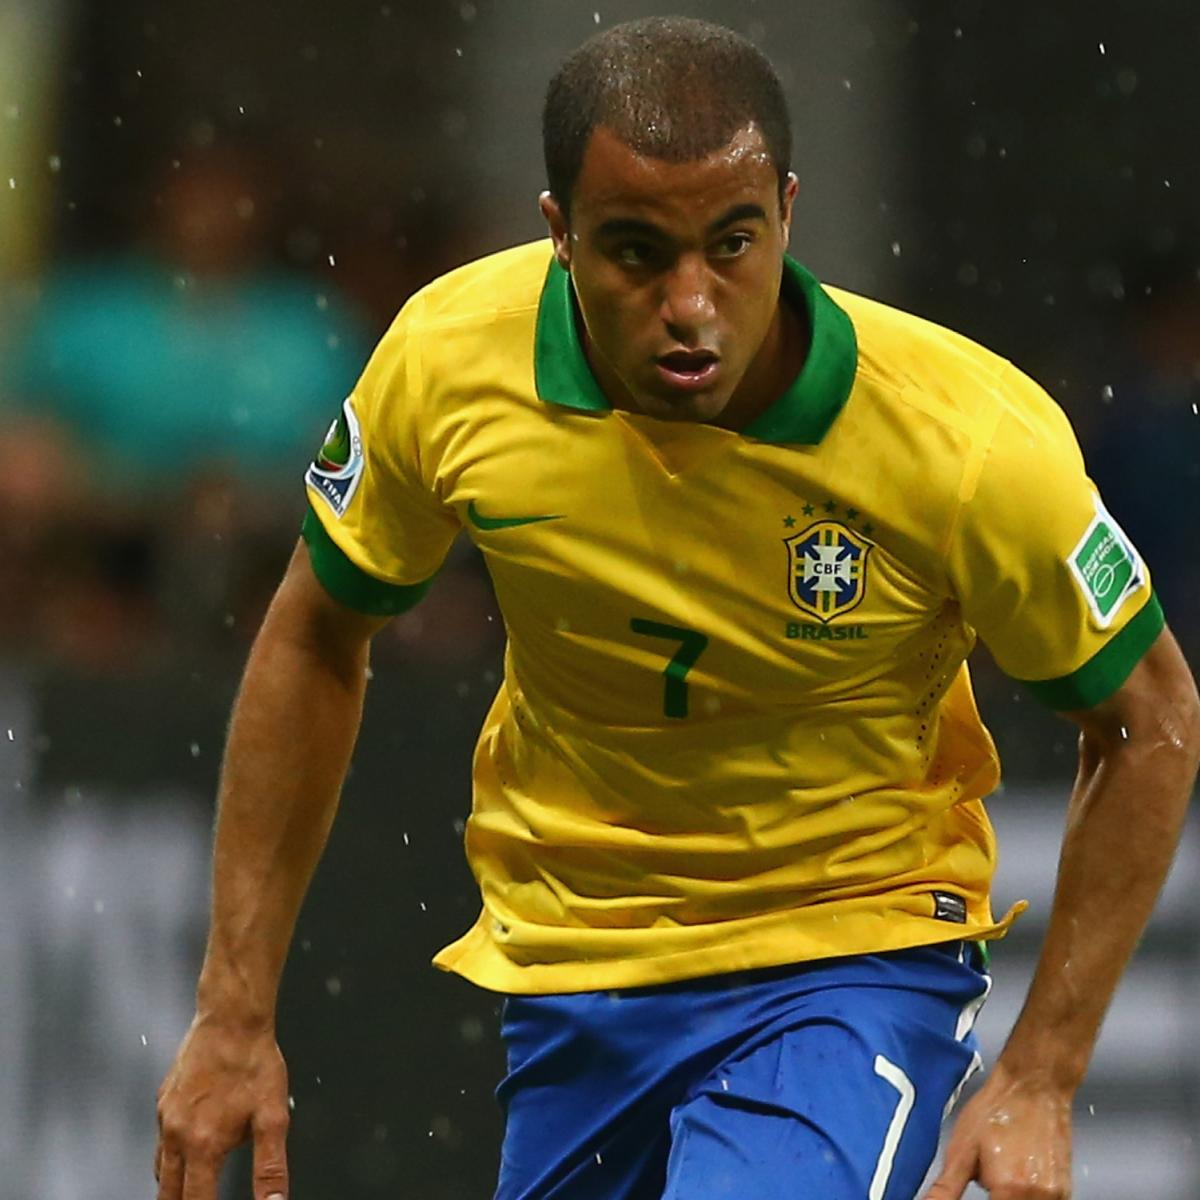 Lucas Moura Injury: Updates On PSG And Brazil Star's Foot